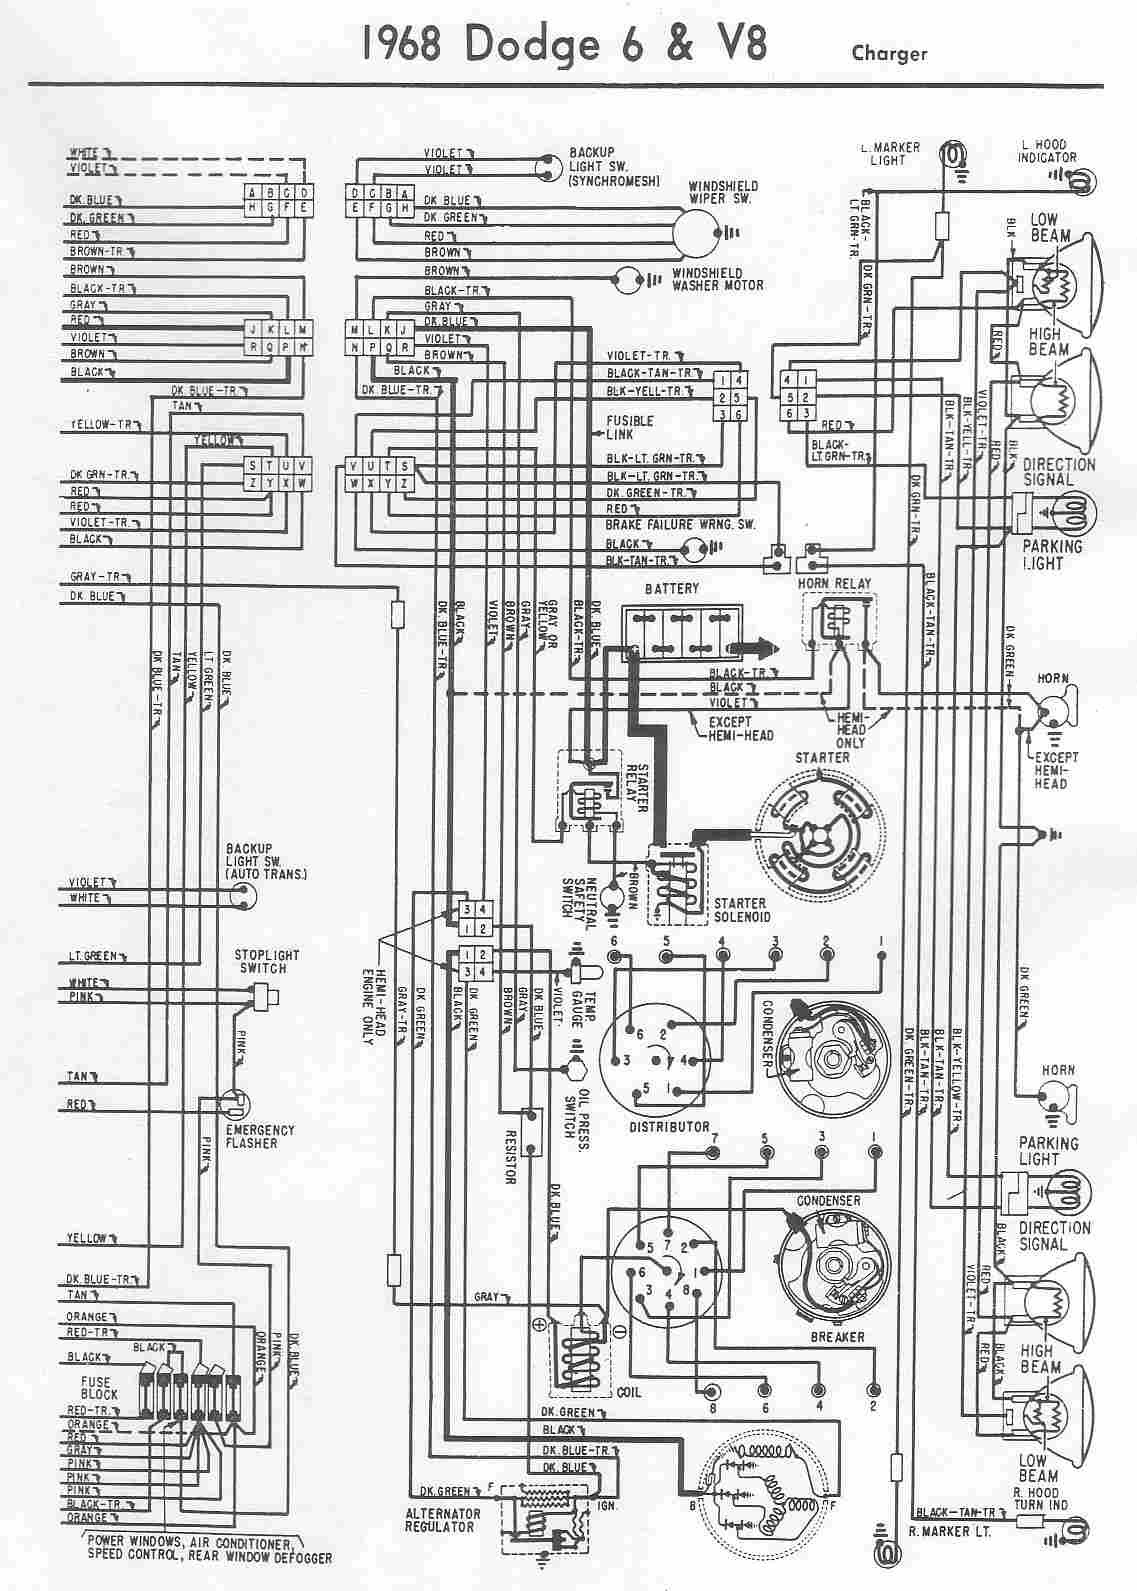 2005 dodge ram tail light wiring diagram wiring diagram image wiring diagrams for 2008 dodge dakota pick up dodge dart wiring schematics wiring diagram dodge alternator wiring diagram 1990 dodge pickup wiring diagram source